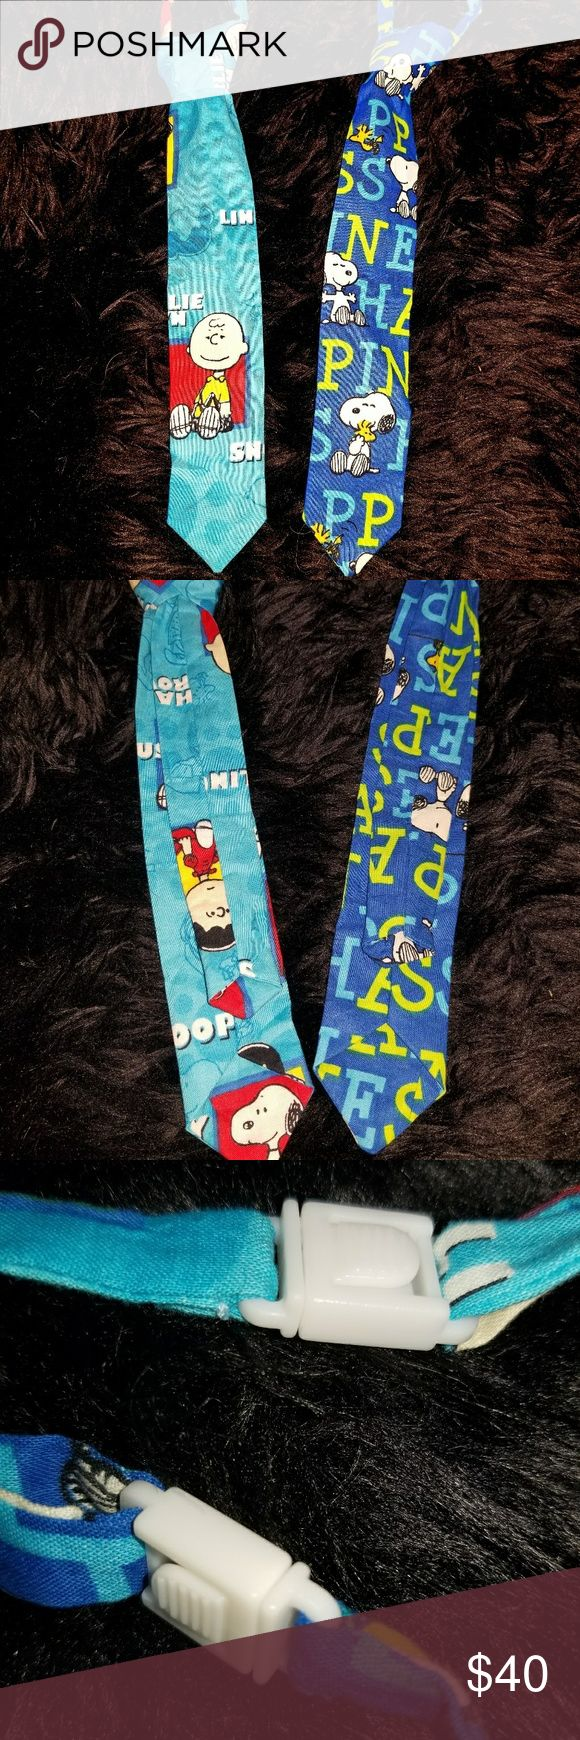 Peanuts Theme Custom Made Adjustable Ties! I had these custom made by an Etsy seller many years ago when my son was heavily into Peanuts. He probly wore them twice & they were not just handmade, but the seller actually searched for fabric based off what I wanted & these are the only ties of their kind. They have Charlie Brown, Snoopy, Woodstock, & Lucy  print.  They clip on & go under the collar or pair with Tshirt for a funky hipster look.  Offers more than 10% are rejected unless you are…